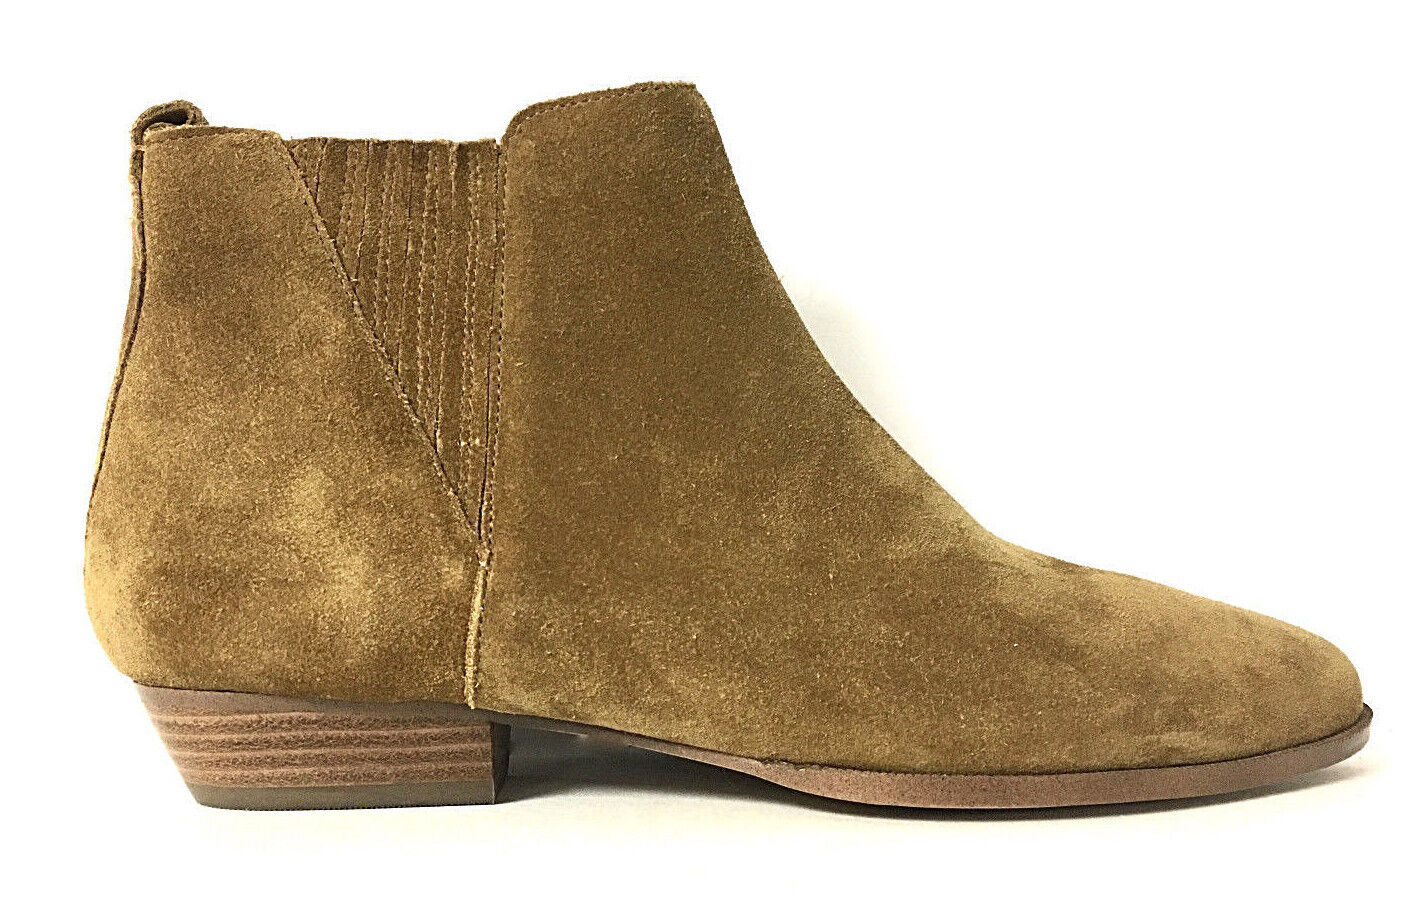 IVANKA TRUMP - AVALI BROWN SUEDE ANKLE BOOT SZ 9.5, RETAIL  150